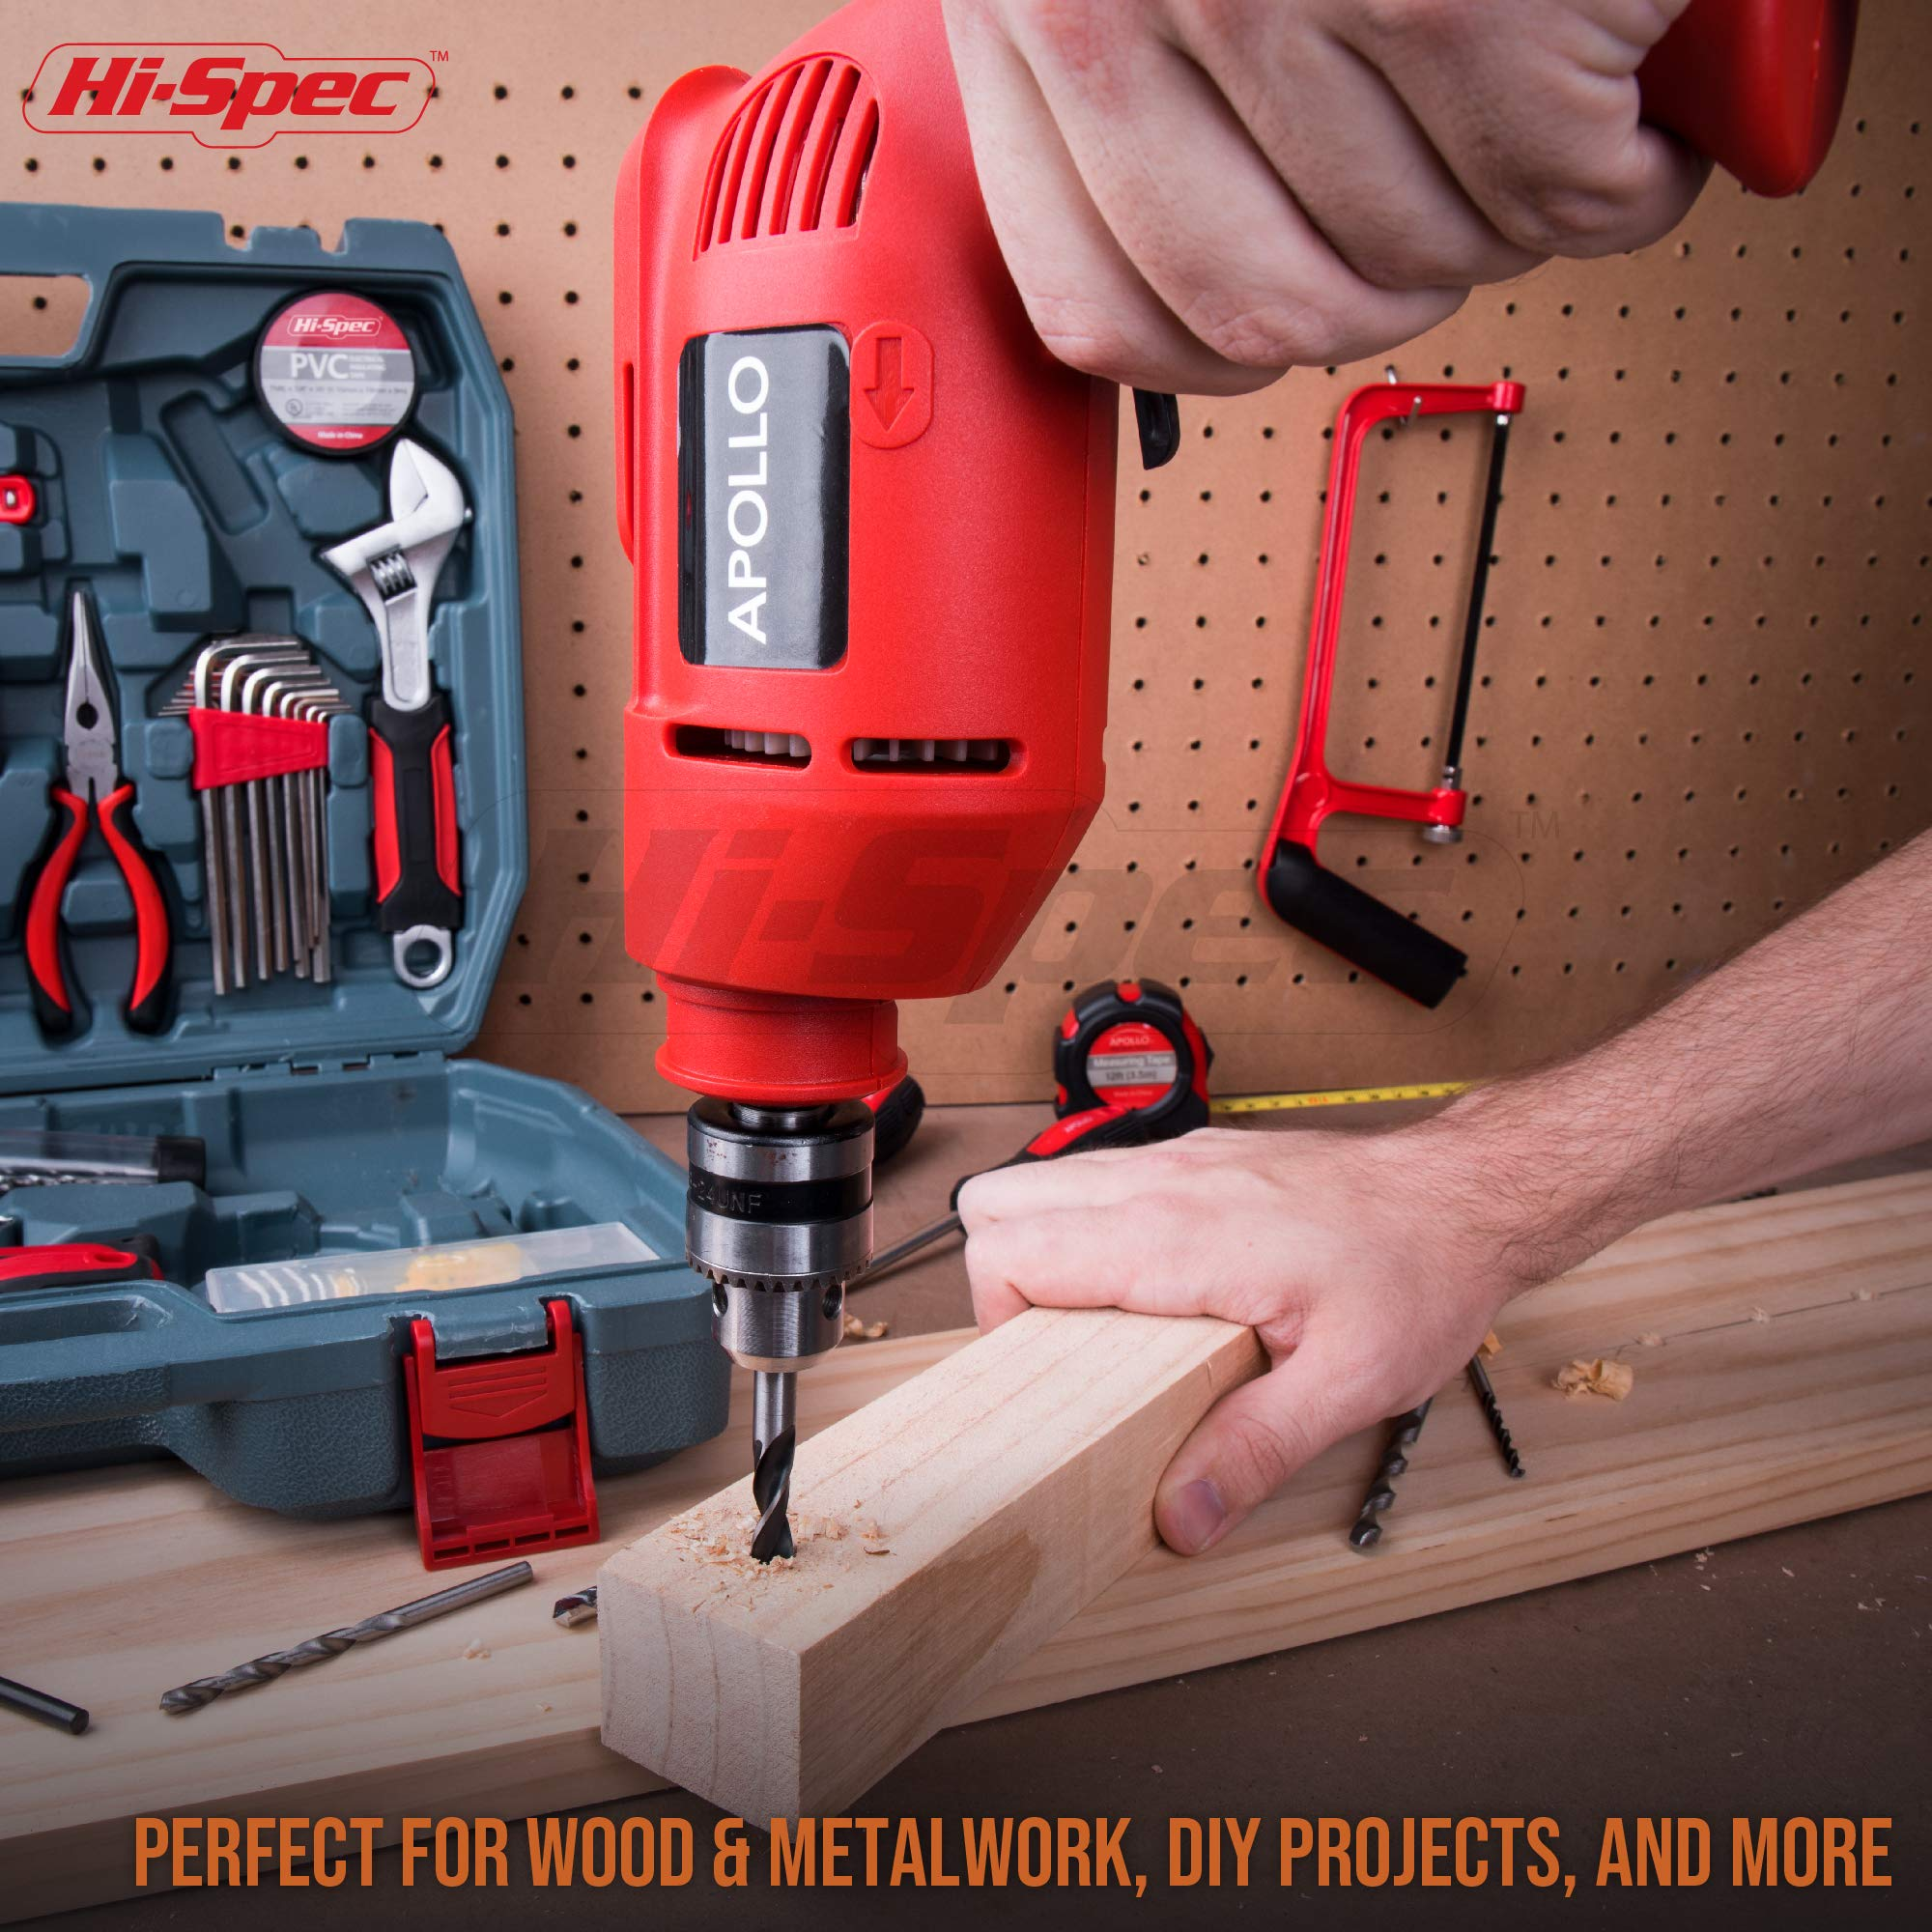 Hi-Spec Complete 130pc 110V 300W Hammer Power Drill & Hand Tool Set Combo Kit with Hacksaw, Pliers, Claw-Hammer, Wrench, Box Cutter, Hex Keys, Screwdrivers, Socket and Driver Bits, Voltage Tester Case by Hi-Spec (Image #5)